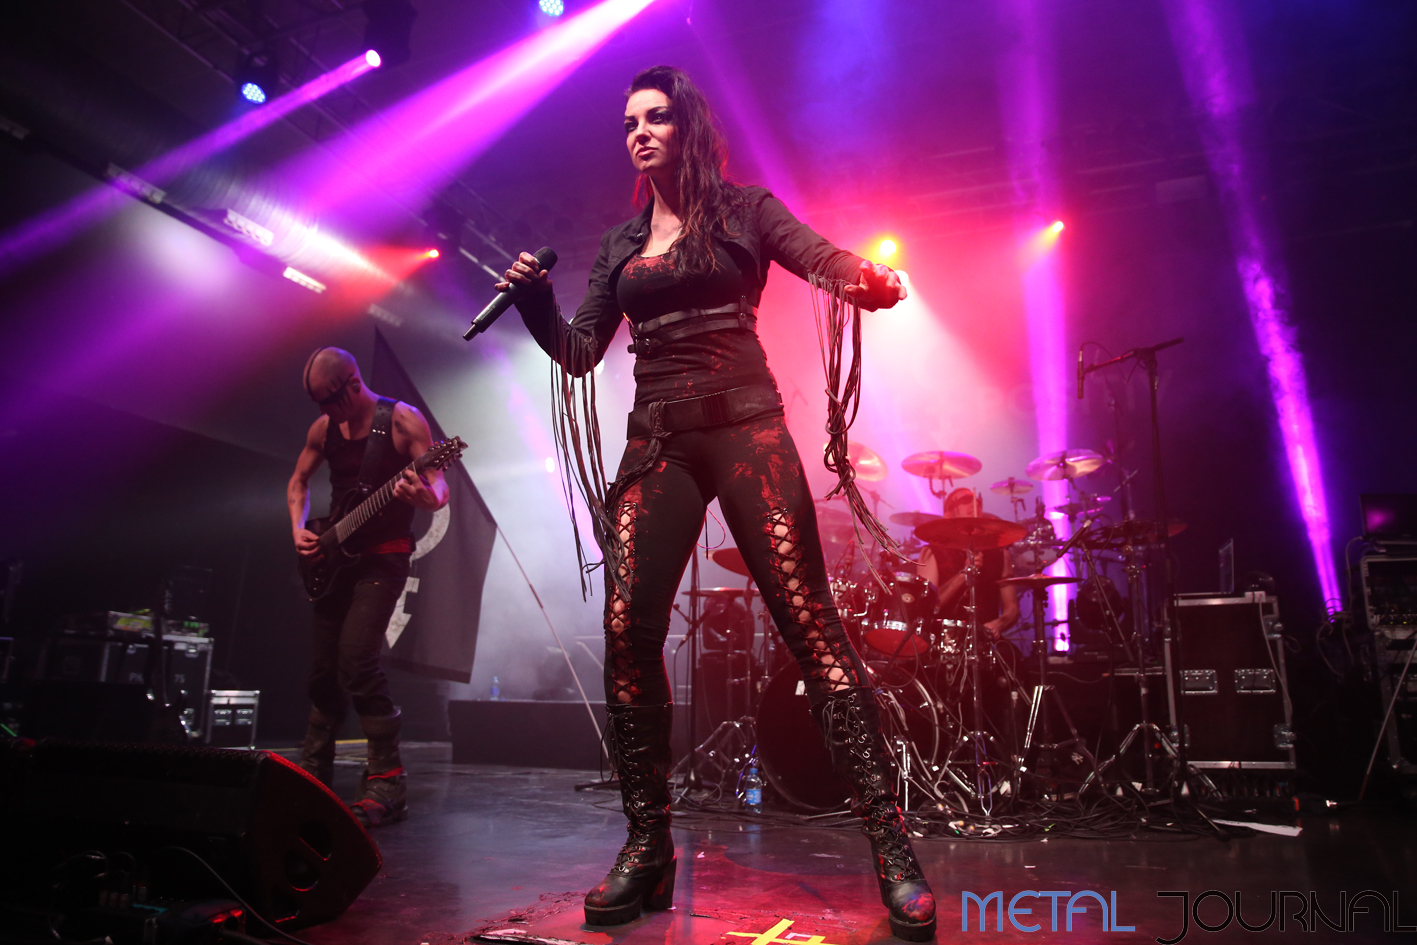 null positiv - metal journal bilbao 2018 pic 1